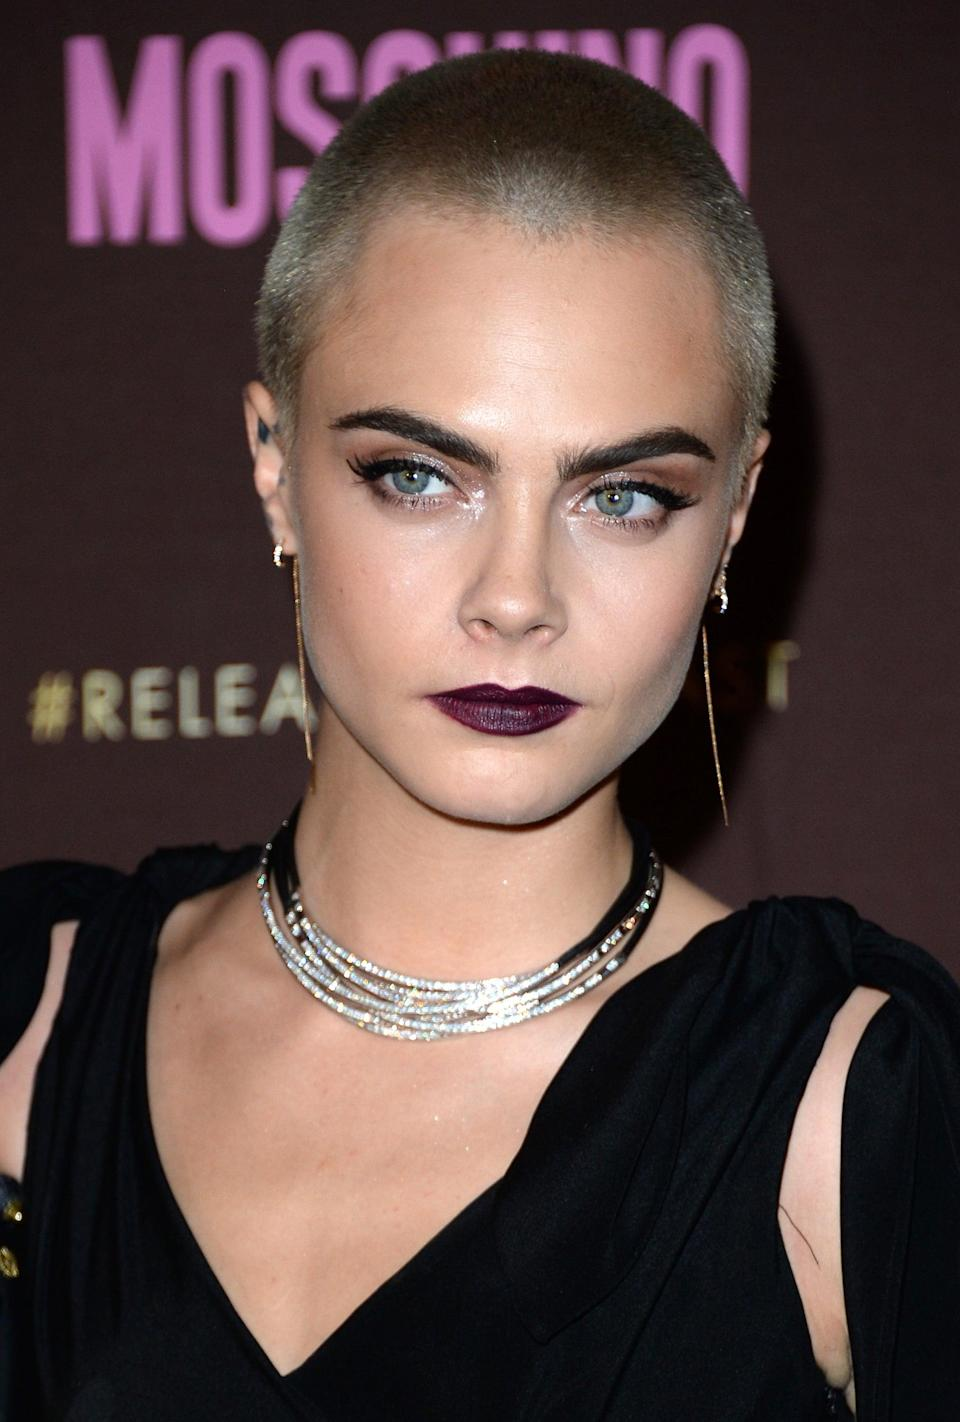 <p>Delevingne used the opportunity to put all the attention on her gorgeous features, wearing winged liner and a vampy, deep-purple lipstick, a color that made her blue eyes look even bluer. </p>